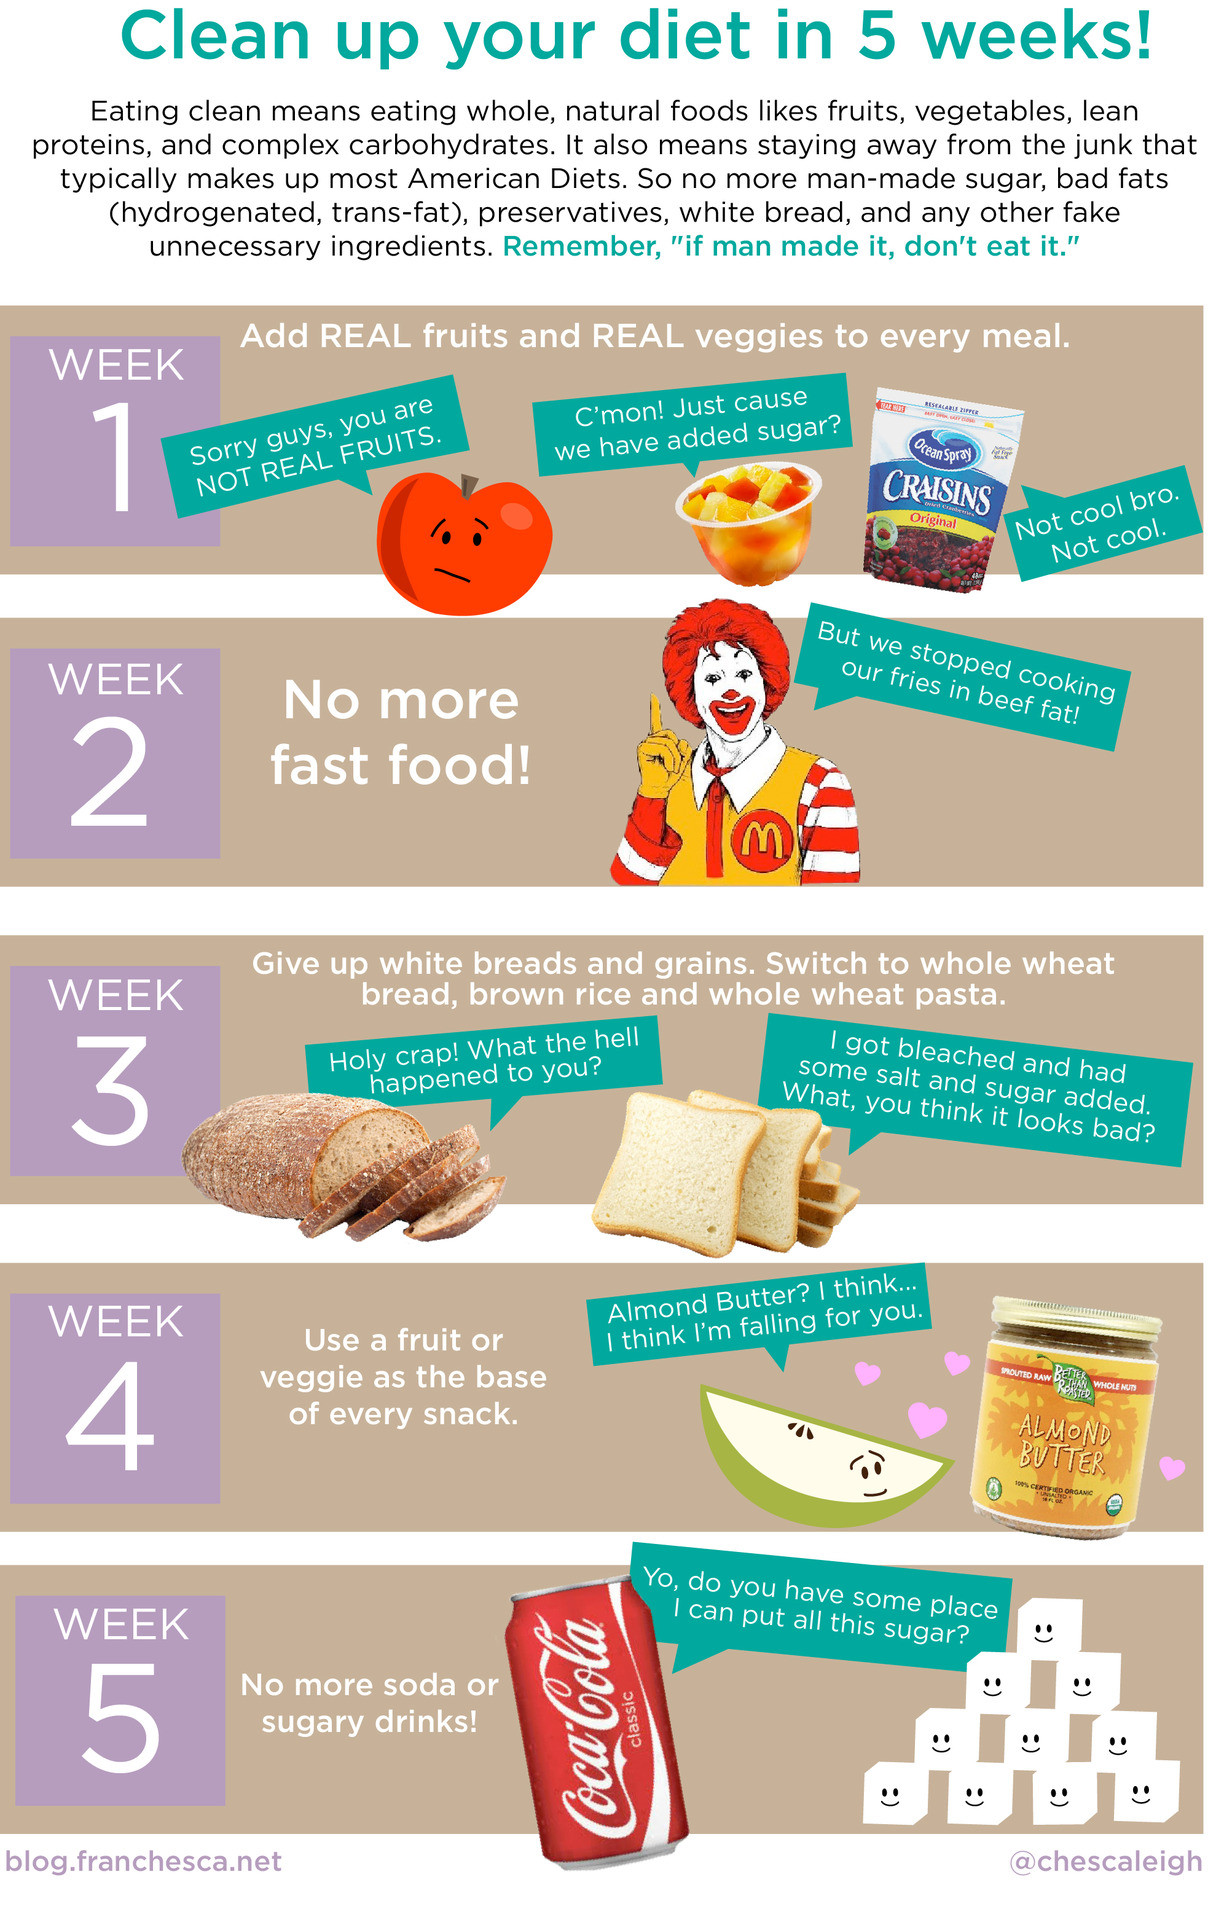 Best Fast Food For Clean Eating